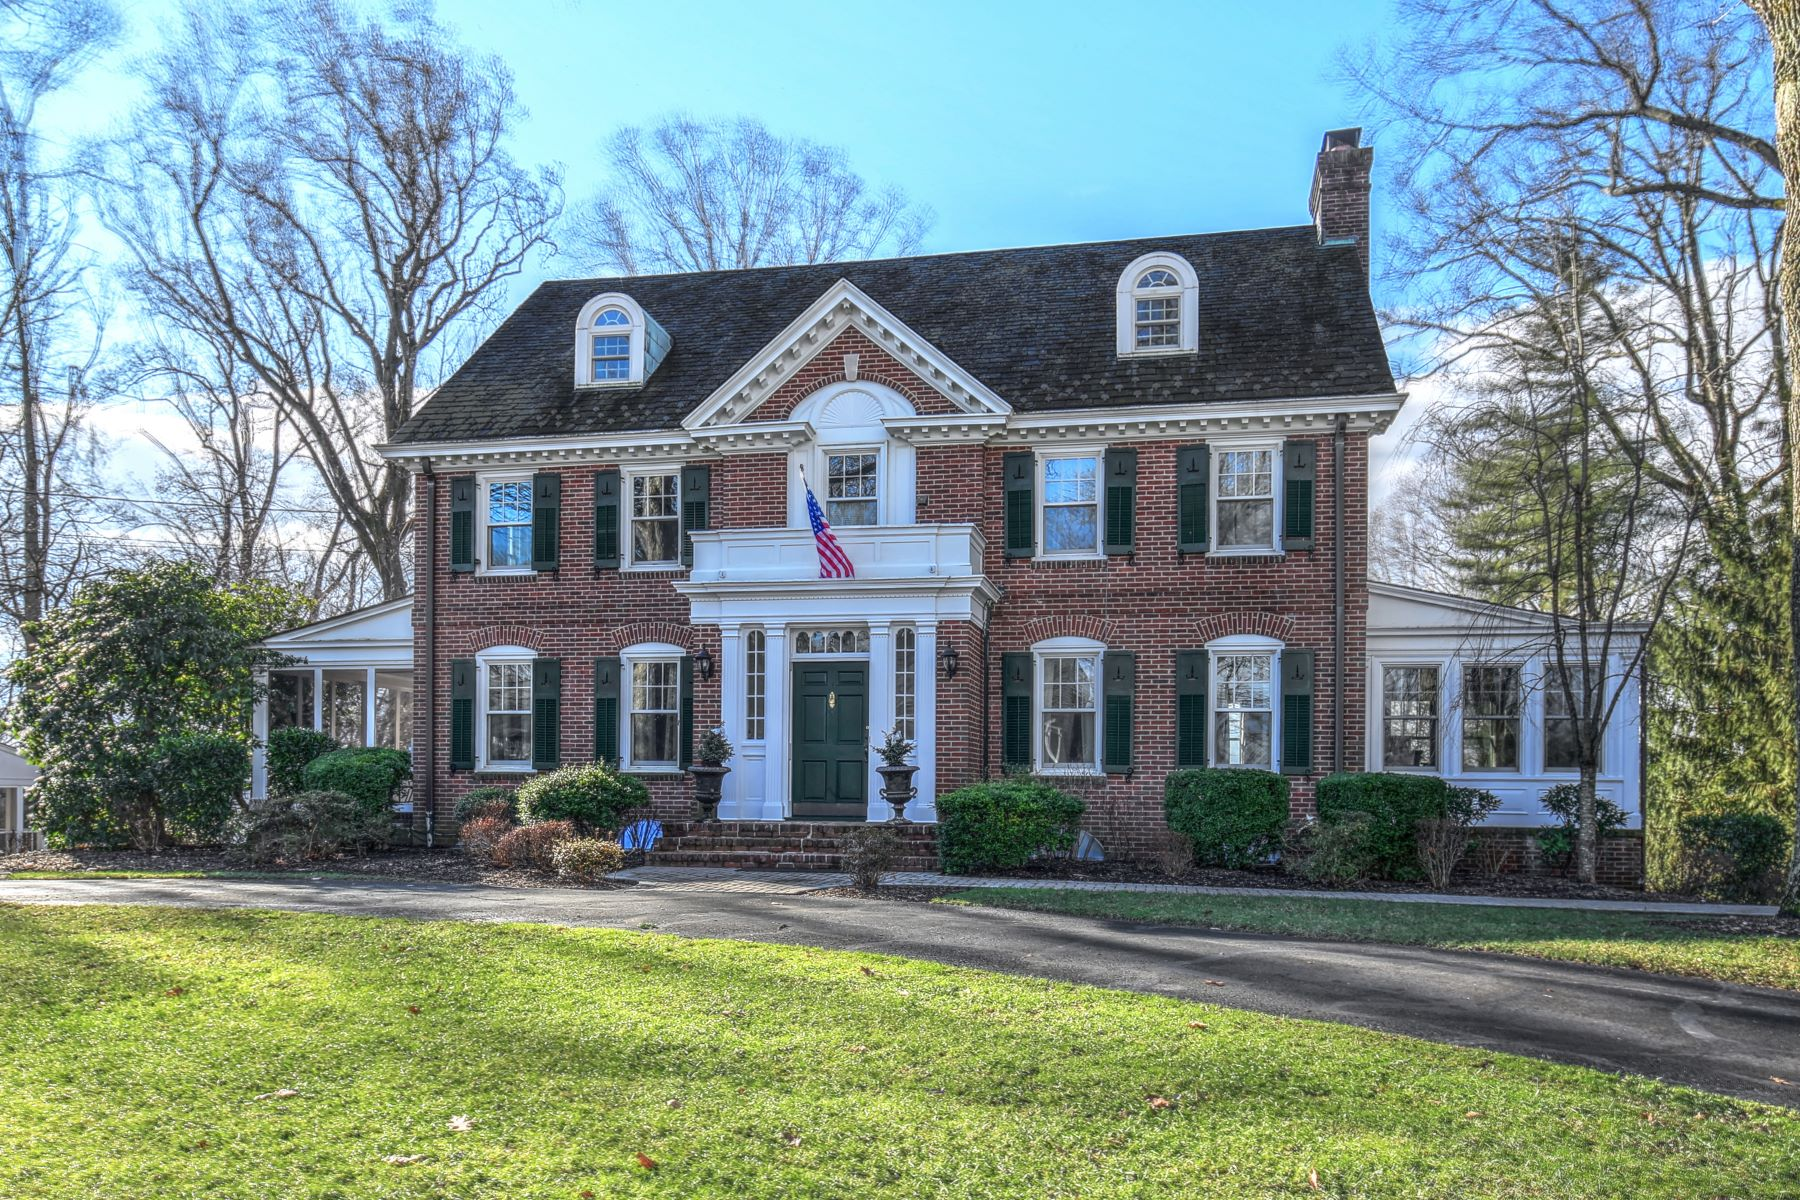 Single Family Homes for Sale at Classic Spring Brook Colonial 28 Spring Brook Road Morris Township, New Jersey 07960 United States